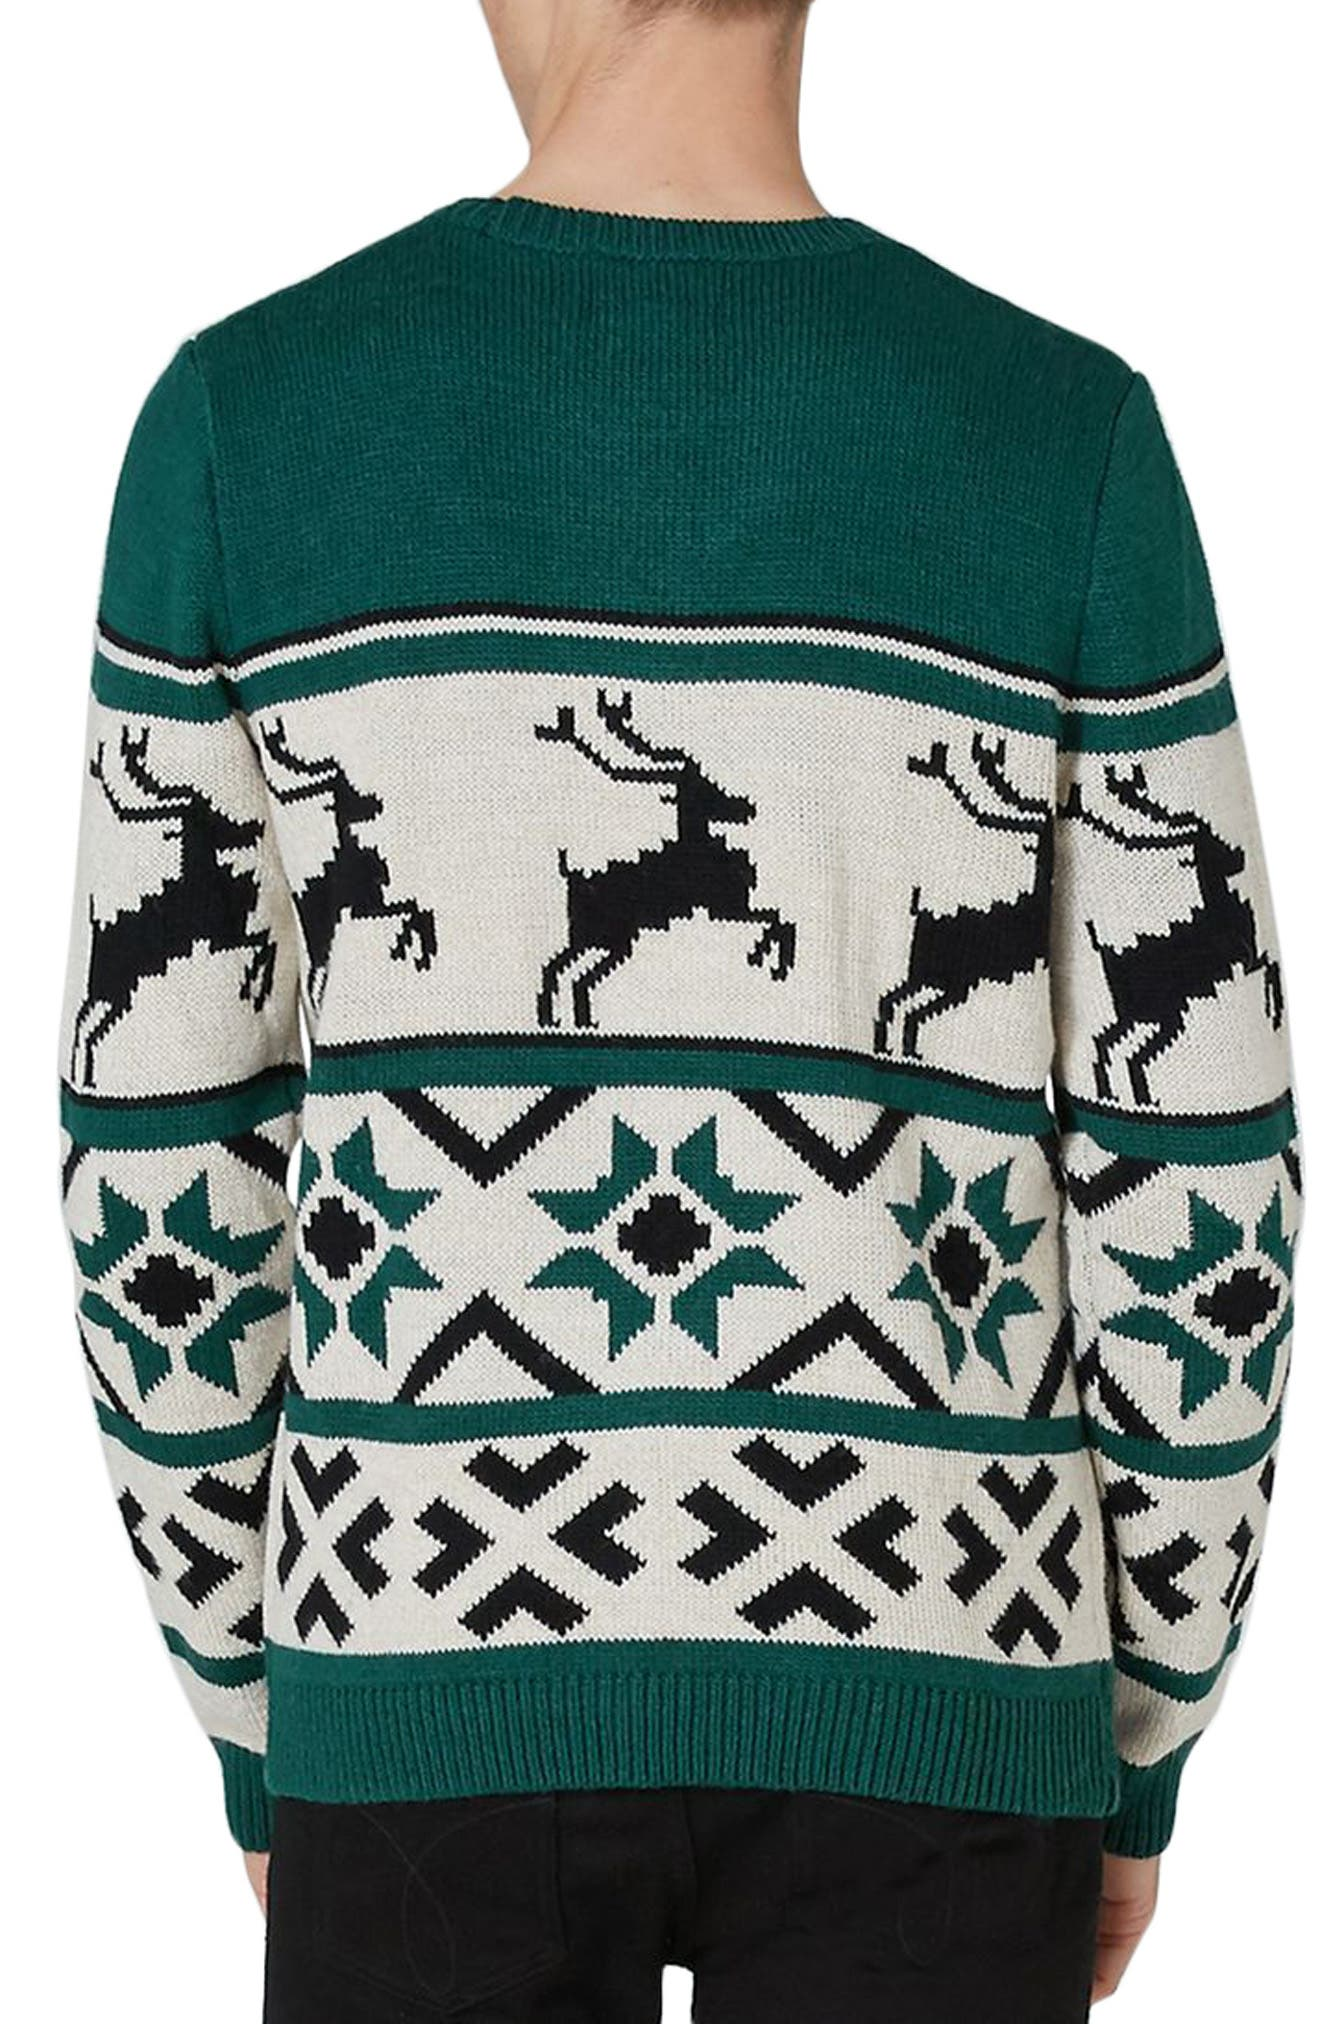 Fair Isle Reindeer Sweater,                             Alternate thumbnail 2, color,                             300